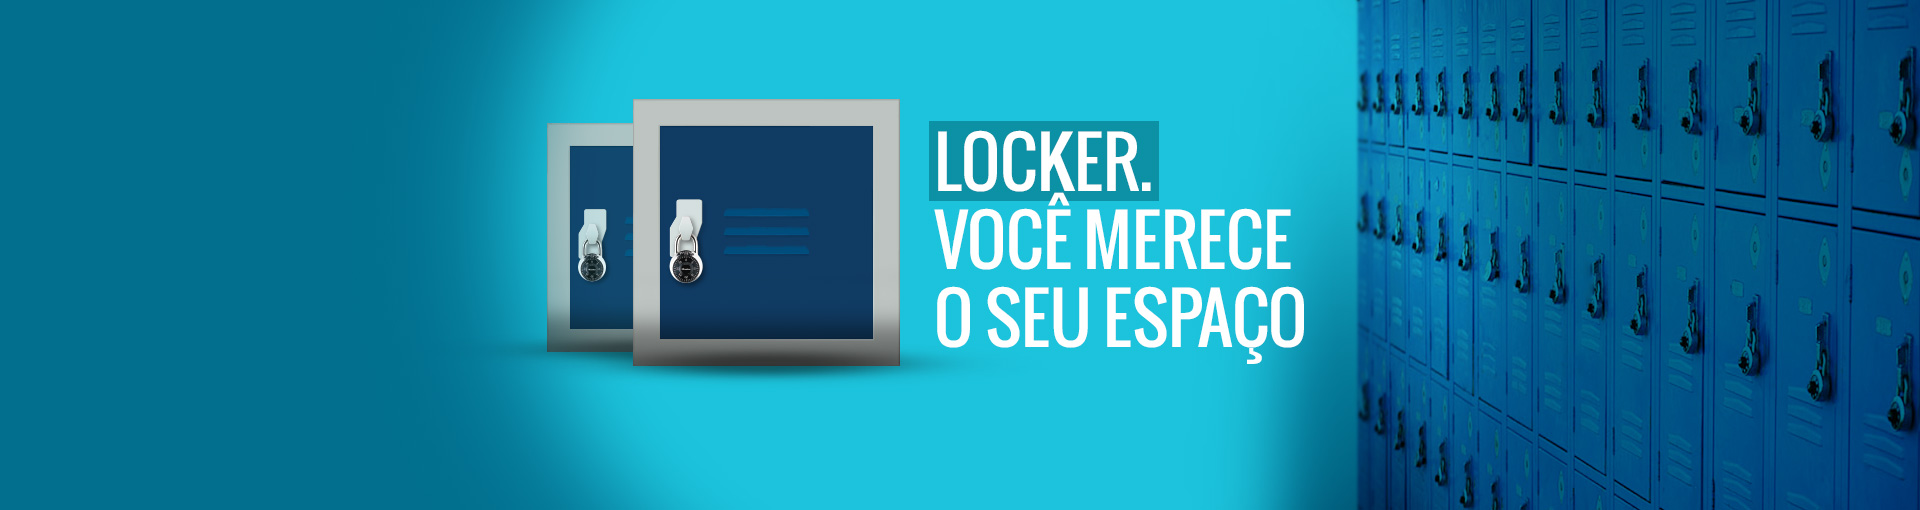 02-locker_banner_site_institucional